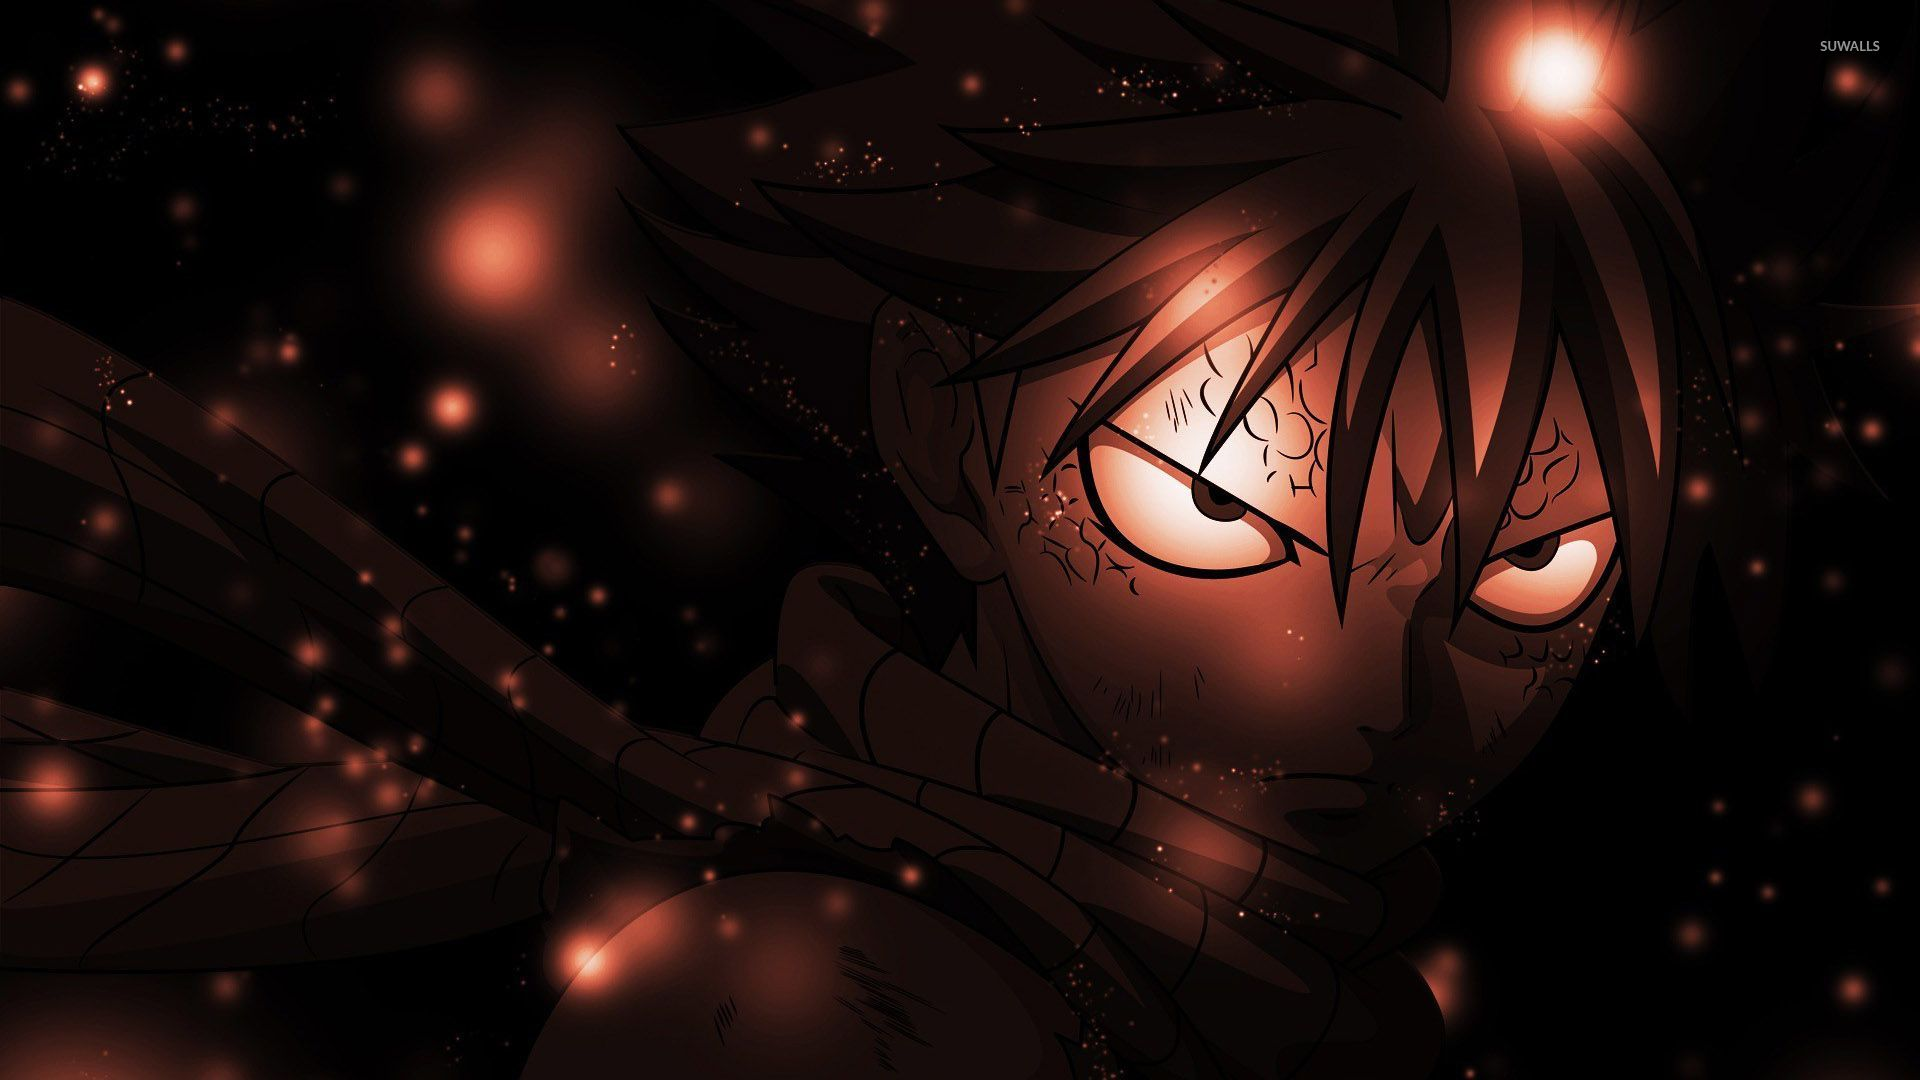 Fairy Tail Anime Hd Wallpapers Posted By Ryan Simpson